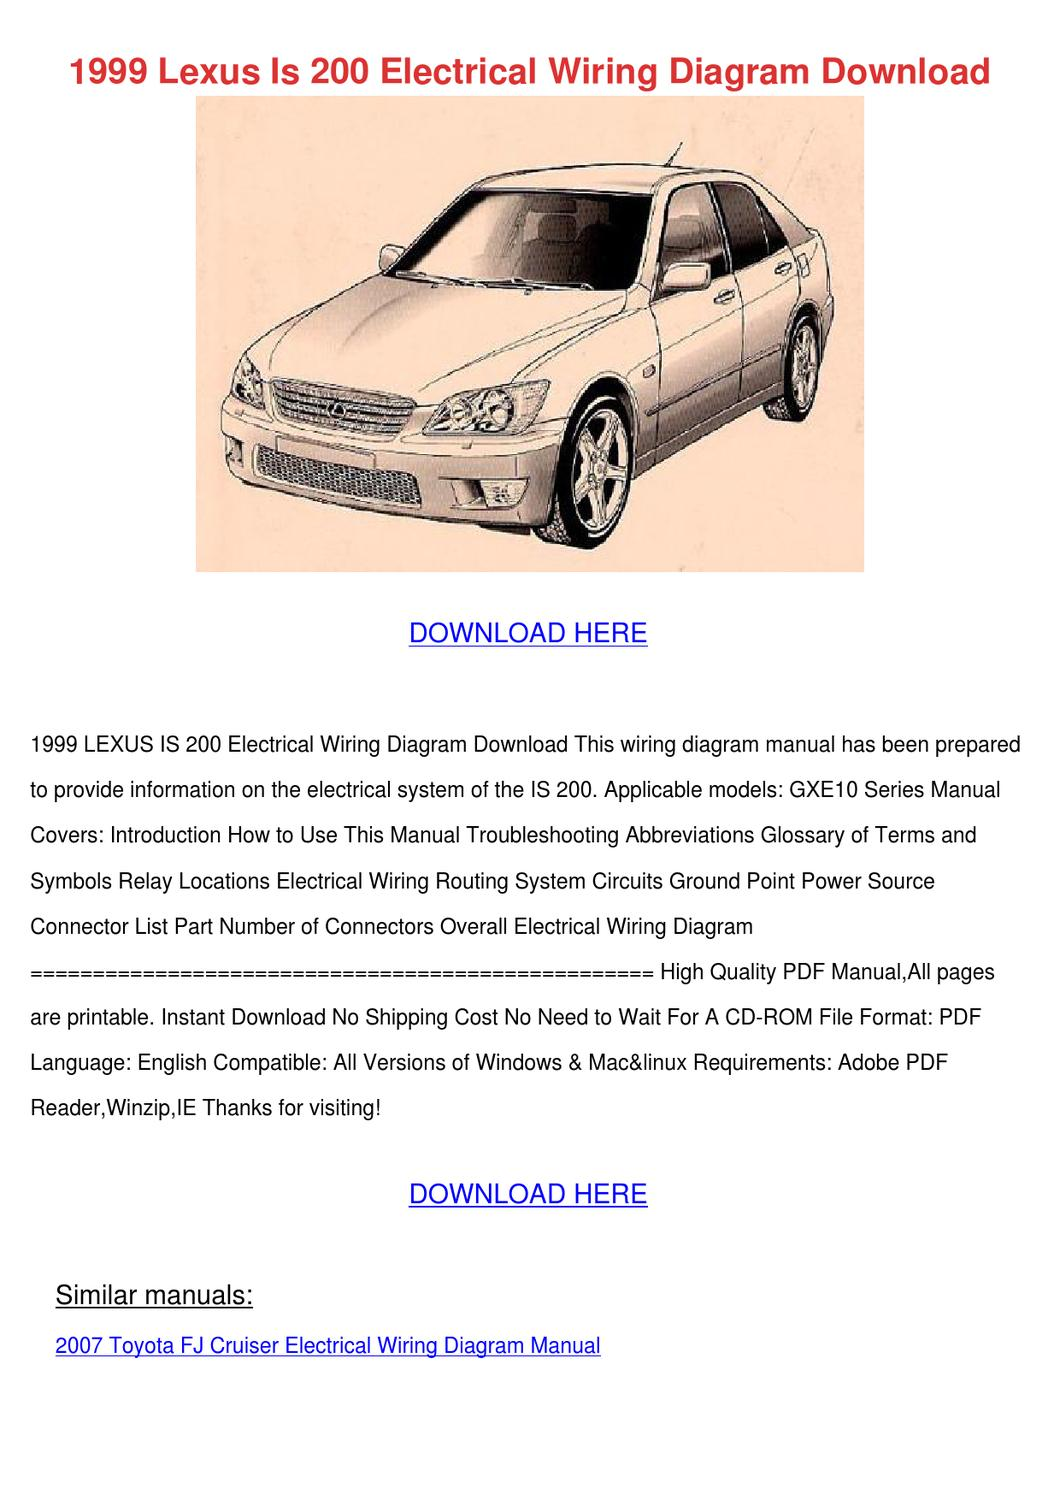 [DHAV_9290]  1999 Lexus Is 200 Electrical Wiring Diagram D by HassanFortin - issuu | Lexus Is200 Wiring Diagrams Pdf |  | Issuu